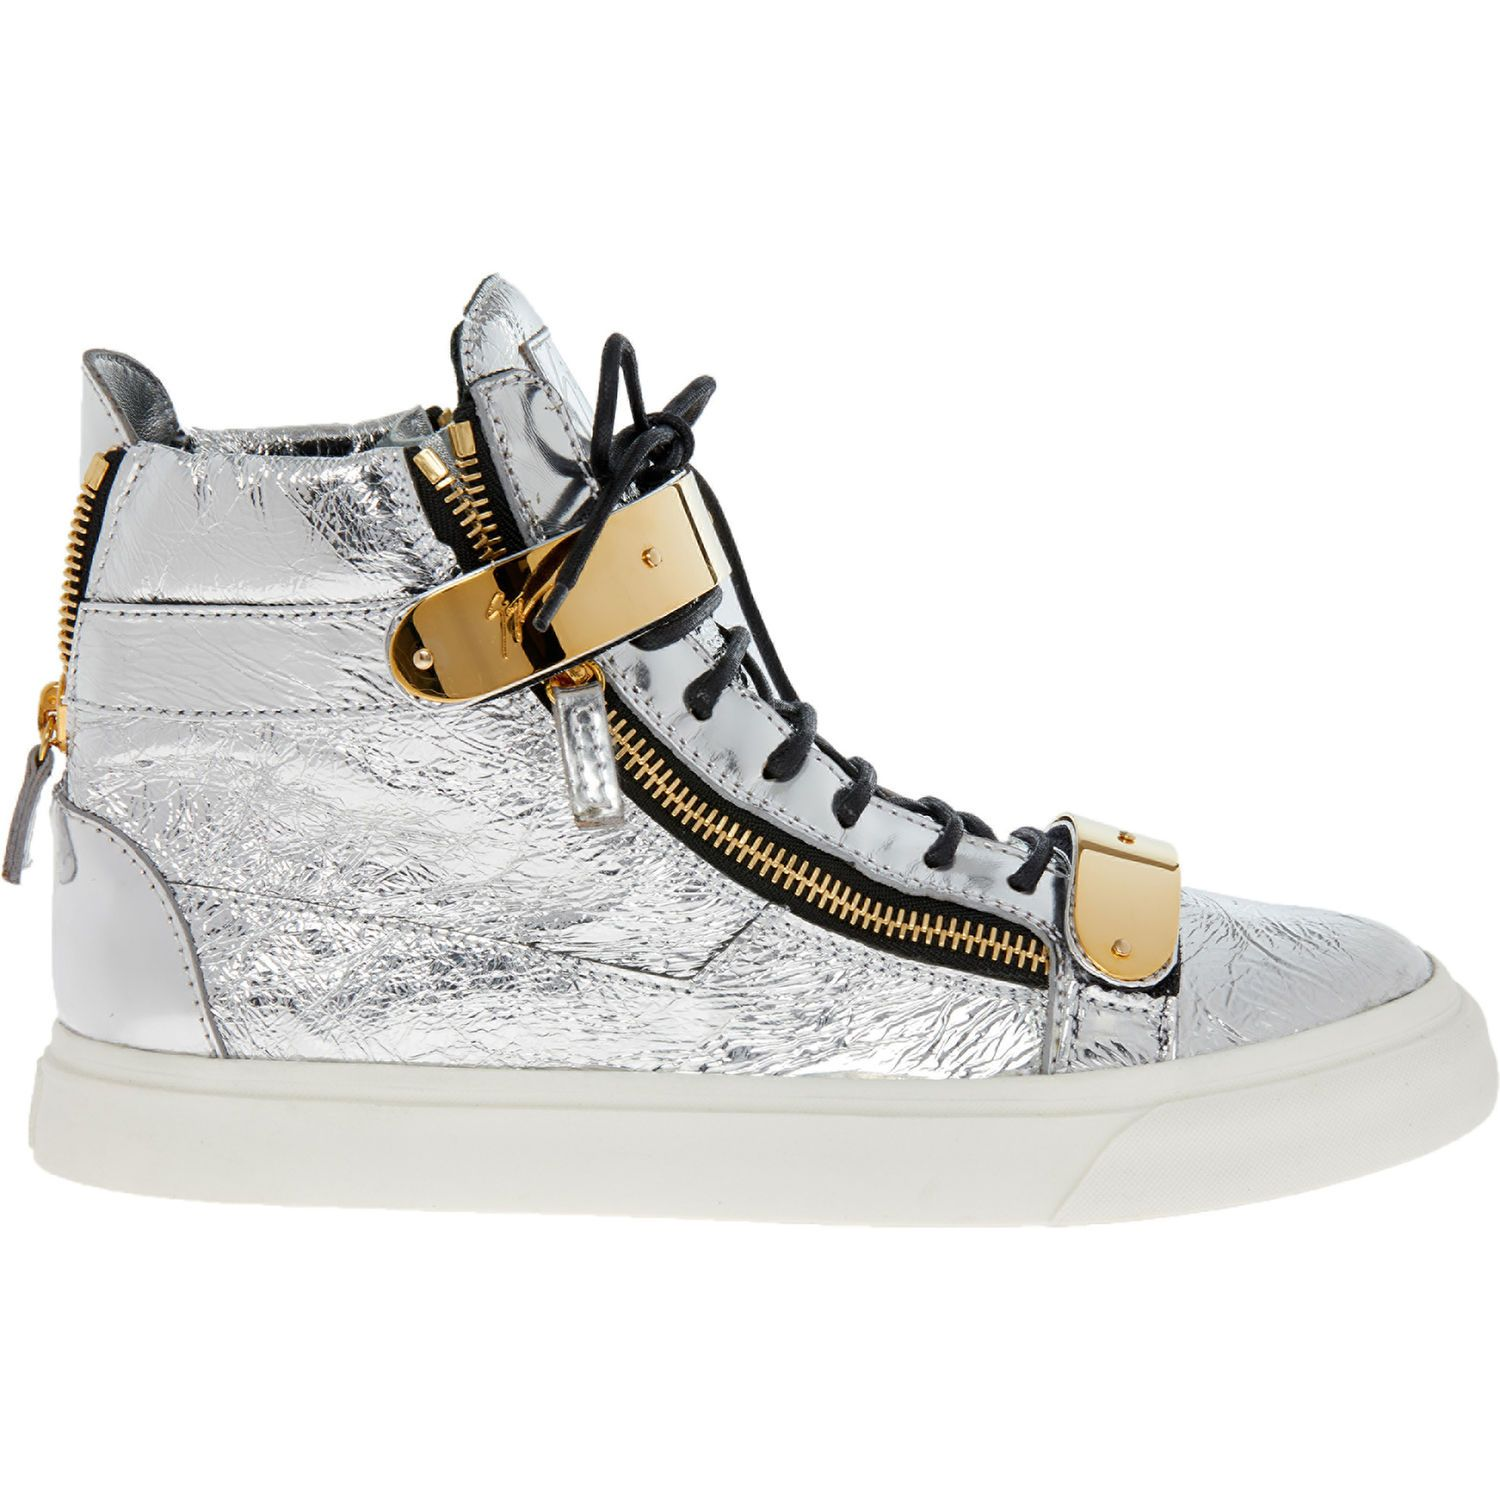 Trainers - Gold Label Shoes